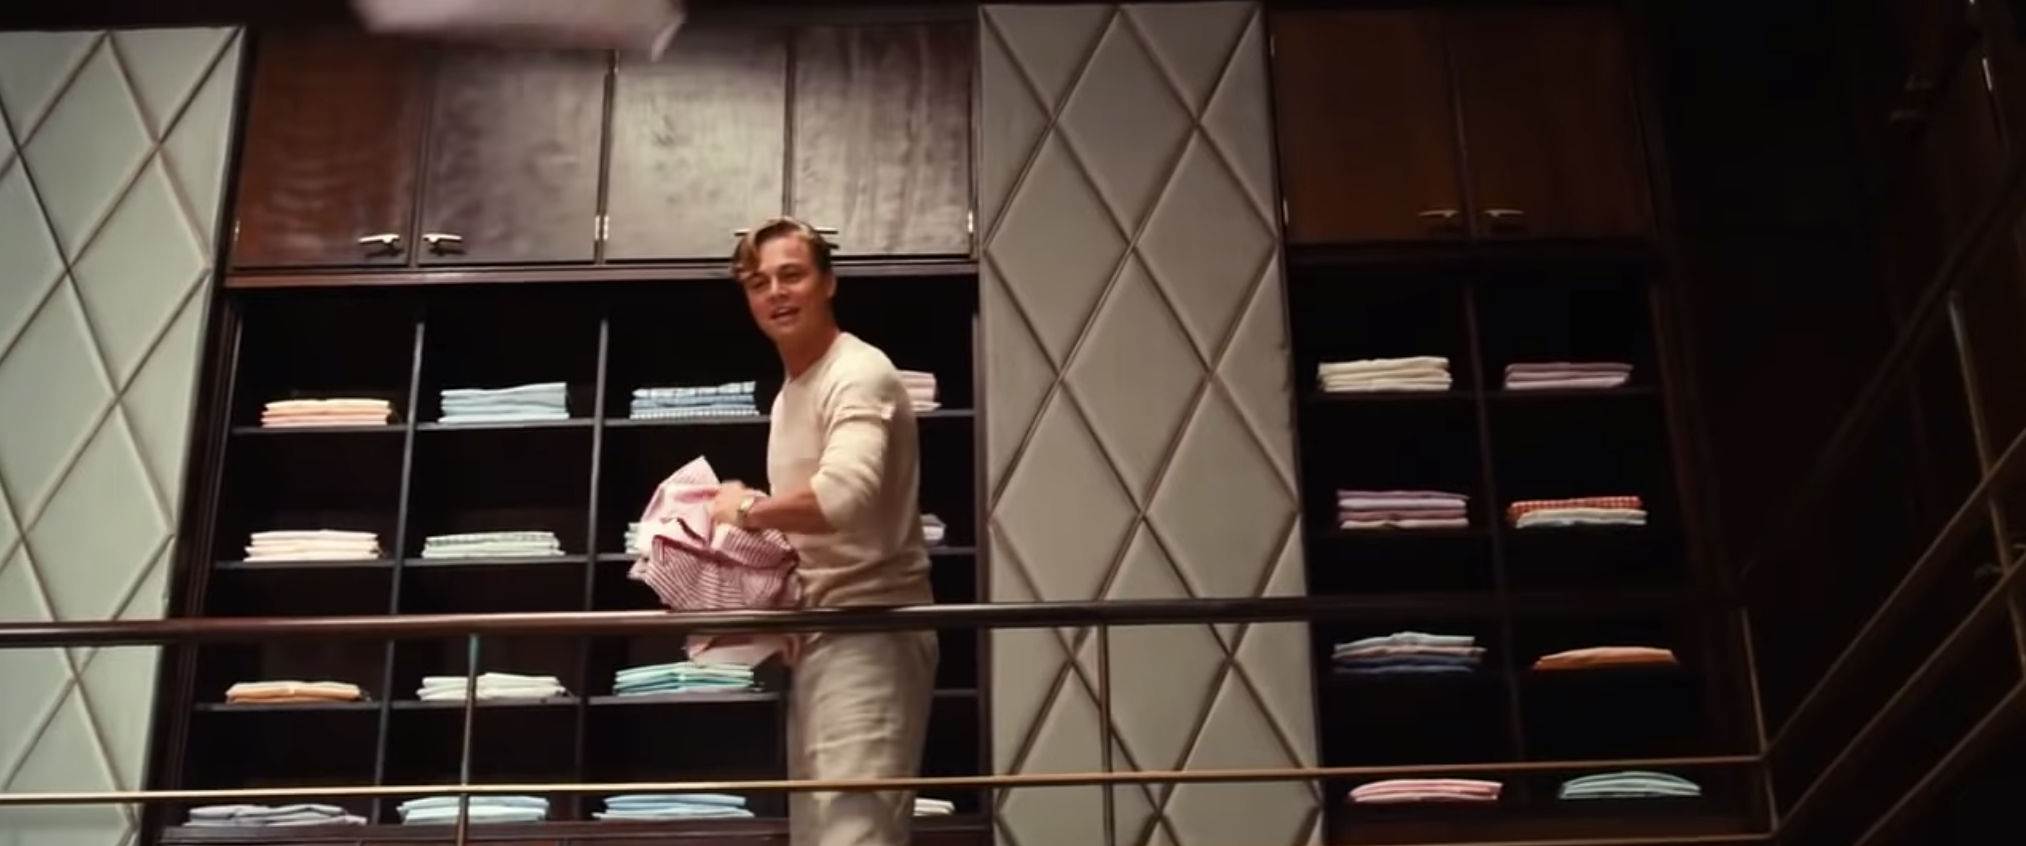 Jay Gatsby throwing his fancy shirts from his closet into Daisy's arms below.